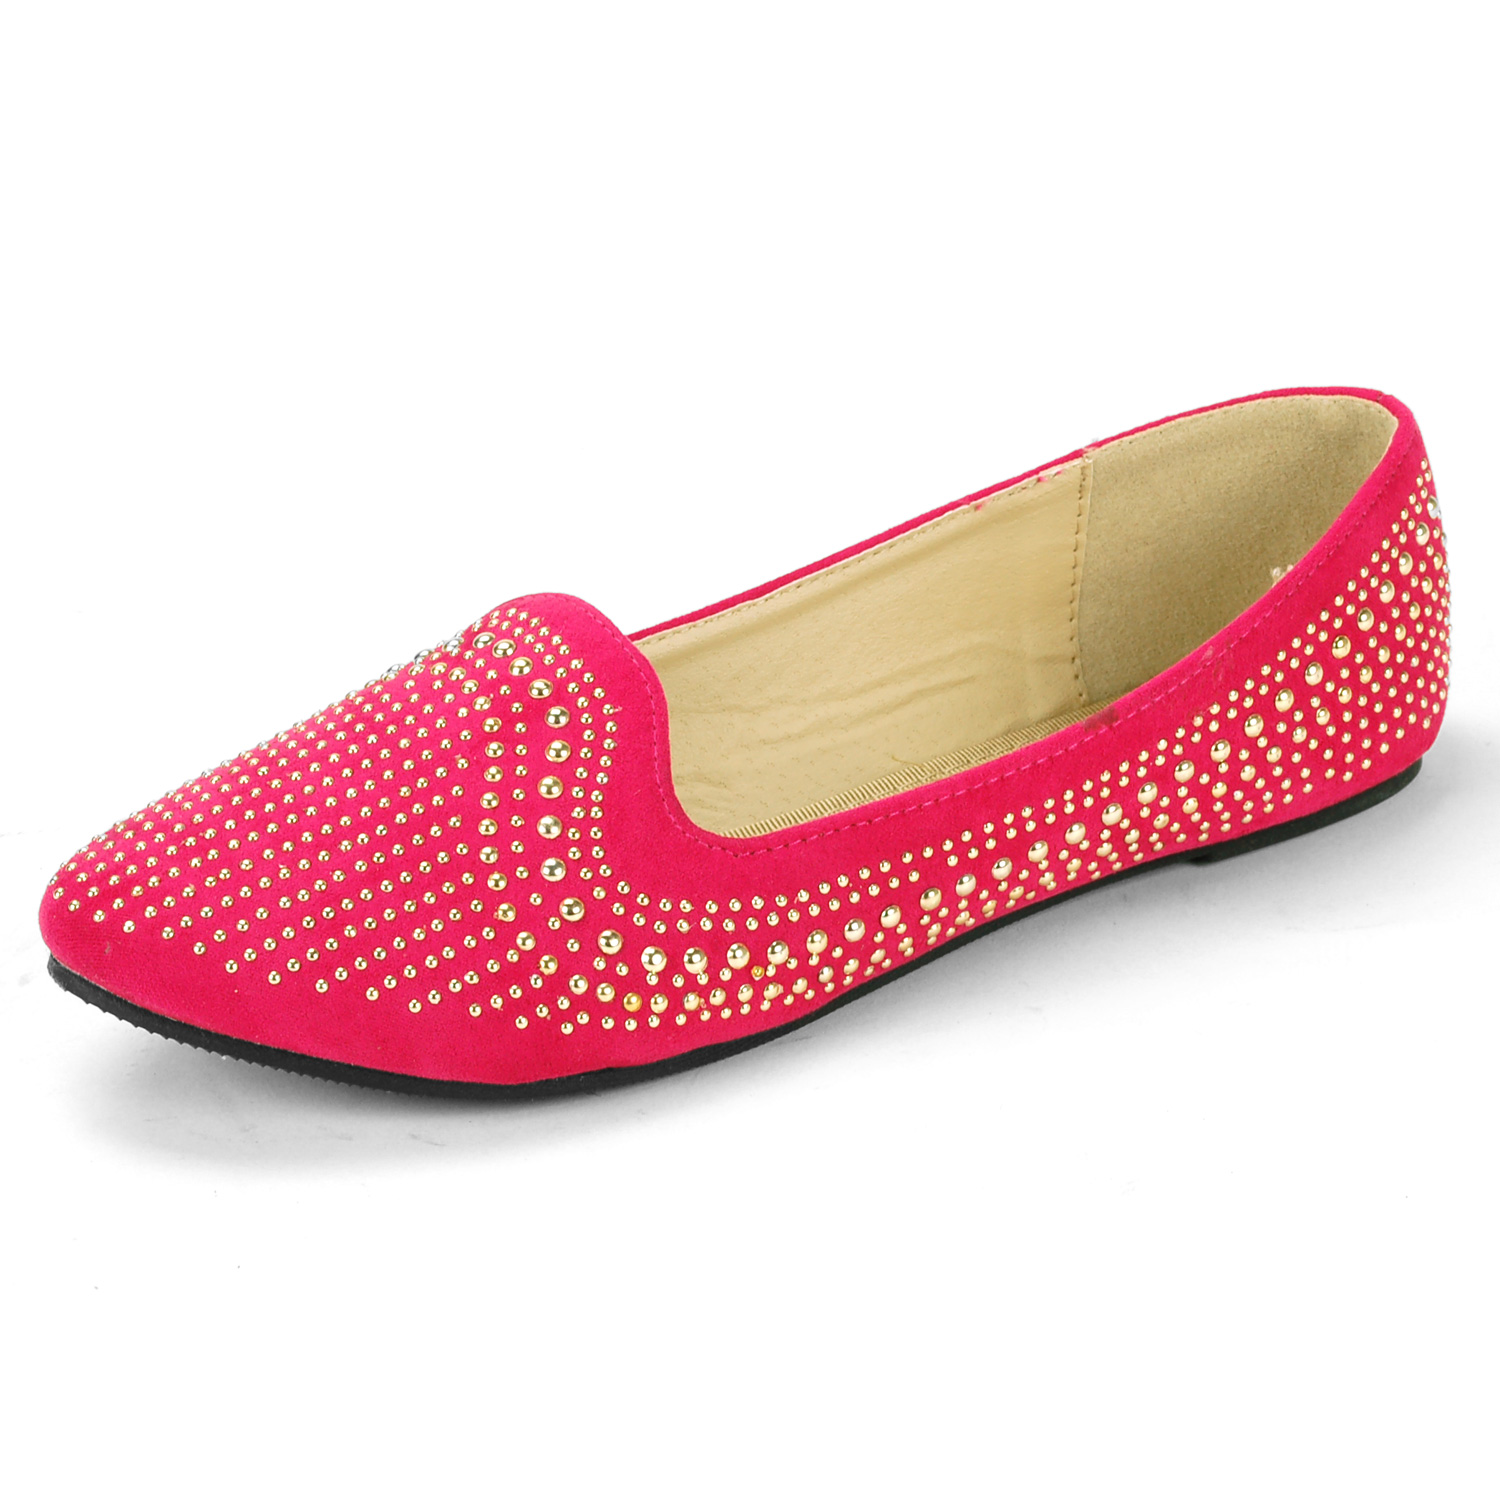 Luo Luo Womens Velvet Loafers Gold Metal Studded Accent Ballet Flats Trendy Slip On Shoe at Sears.com